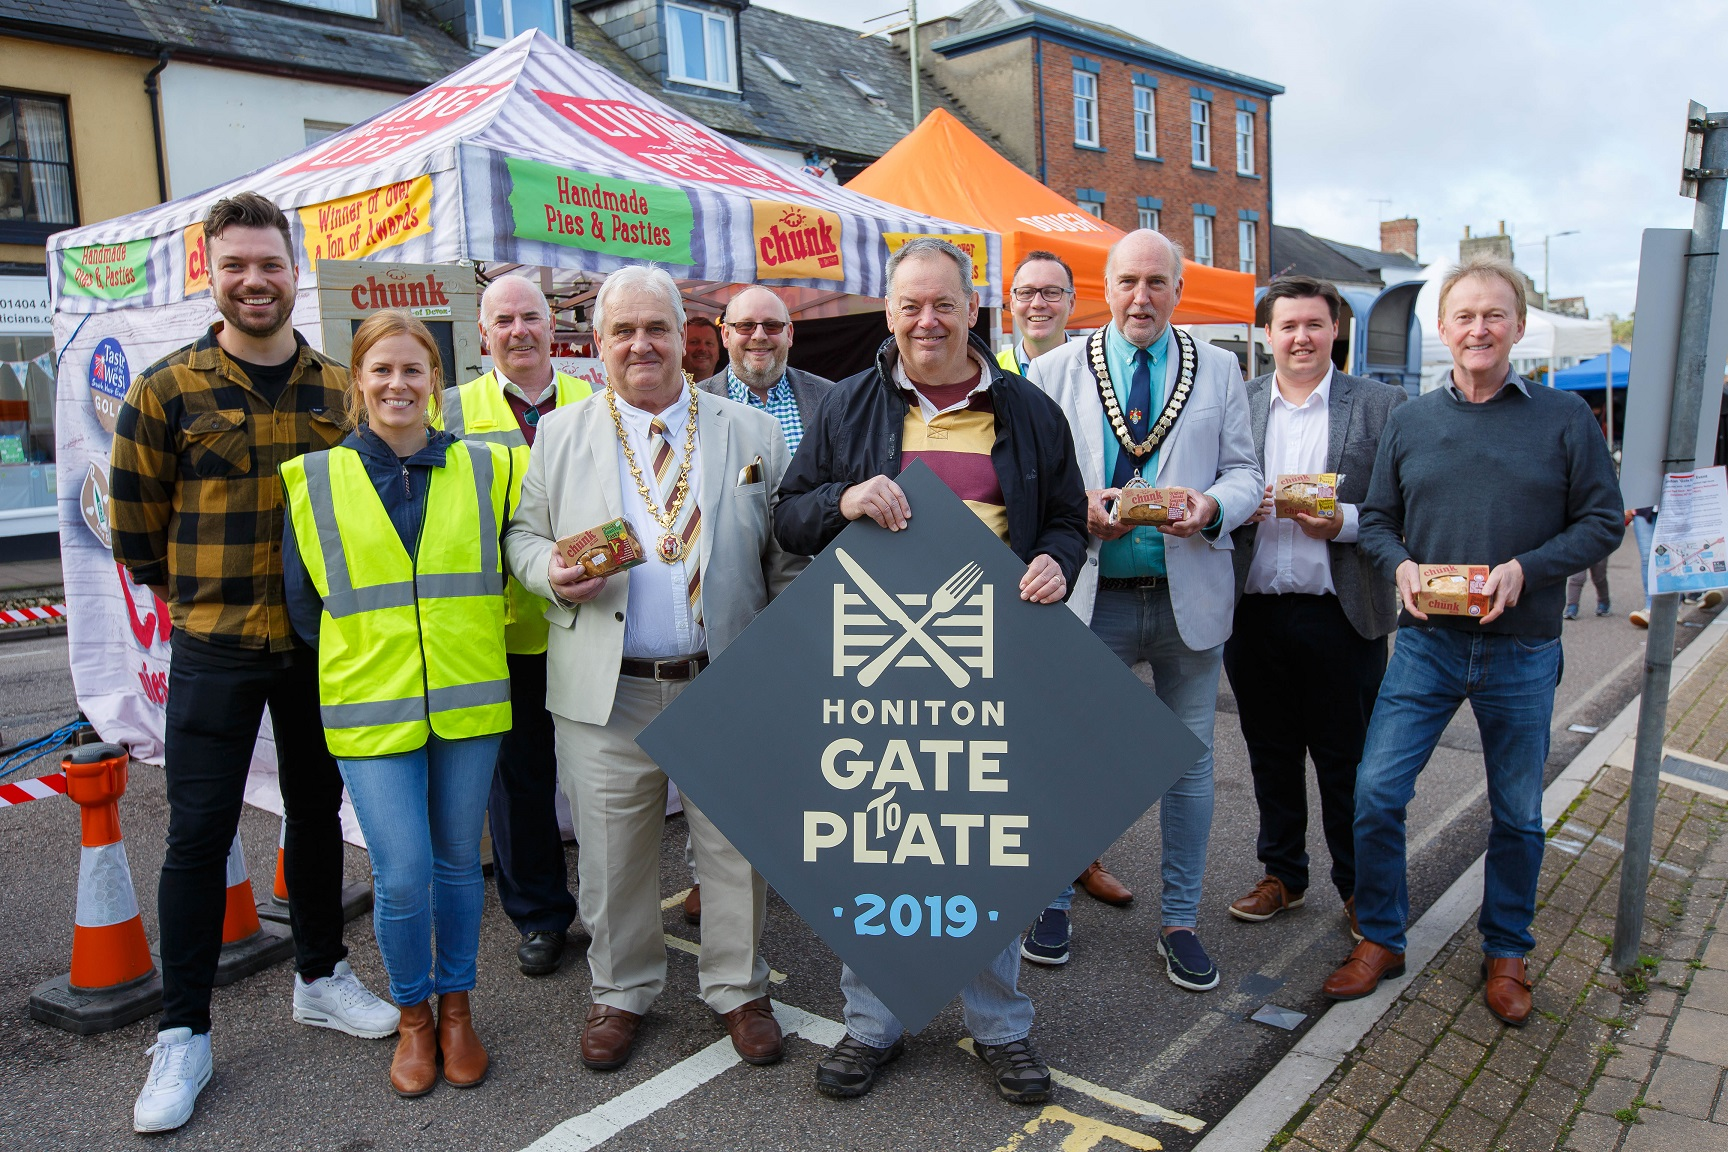 Enjoying Gate to Plate (from left to right) – Ben Atkinson, Heart DJ; Kirsten Rowe, East Devon District Council economy team; Councillor Tony McCollum, East Devon District Council ward member for Honiton St Paul's;  Councillor John Zarczynski, Mayor of Honiton; Councillor Dean Barrow, East Devon District Council ward member for Honiton St Paul's; Councillor Kevin Blakey, East Devon District Council's Portfolio holder for Economy; Andrew Hopkins, East Devon District Council economy team; Councillor Stuart Hughes, Chairman of East Devon District Council; Councillor Luke Jeffrey, East Devon District Council ward member for Honiton St Michael's; Councillor Ben Ingham, Leader of East Devon District Council.